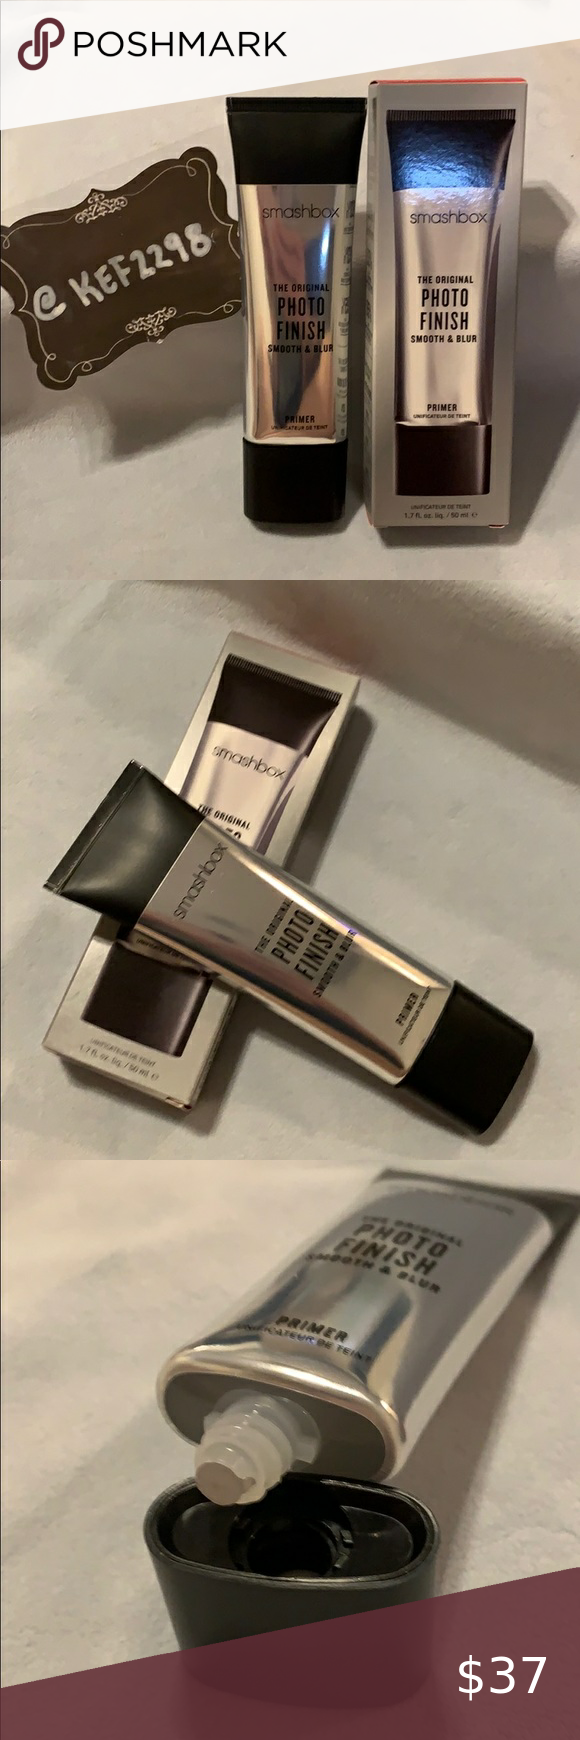 Smashbox Og Photo Finish Smooth Blur Primer In 2020 Smashbox Makeup Smashbox Nourishing Skin